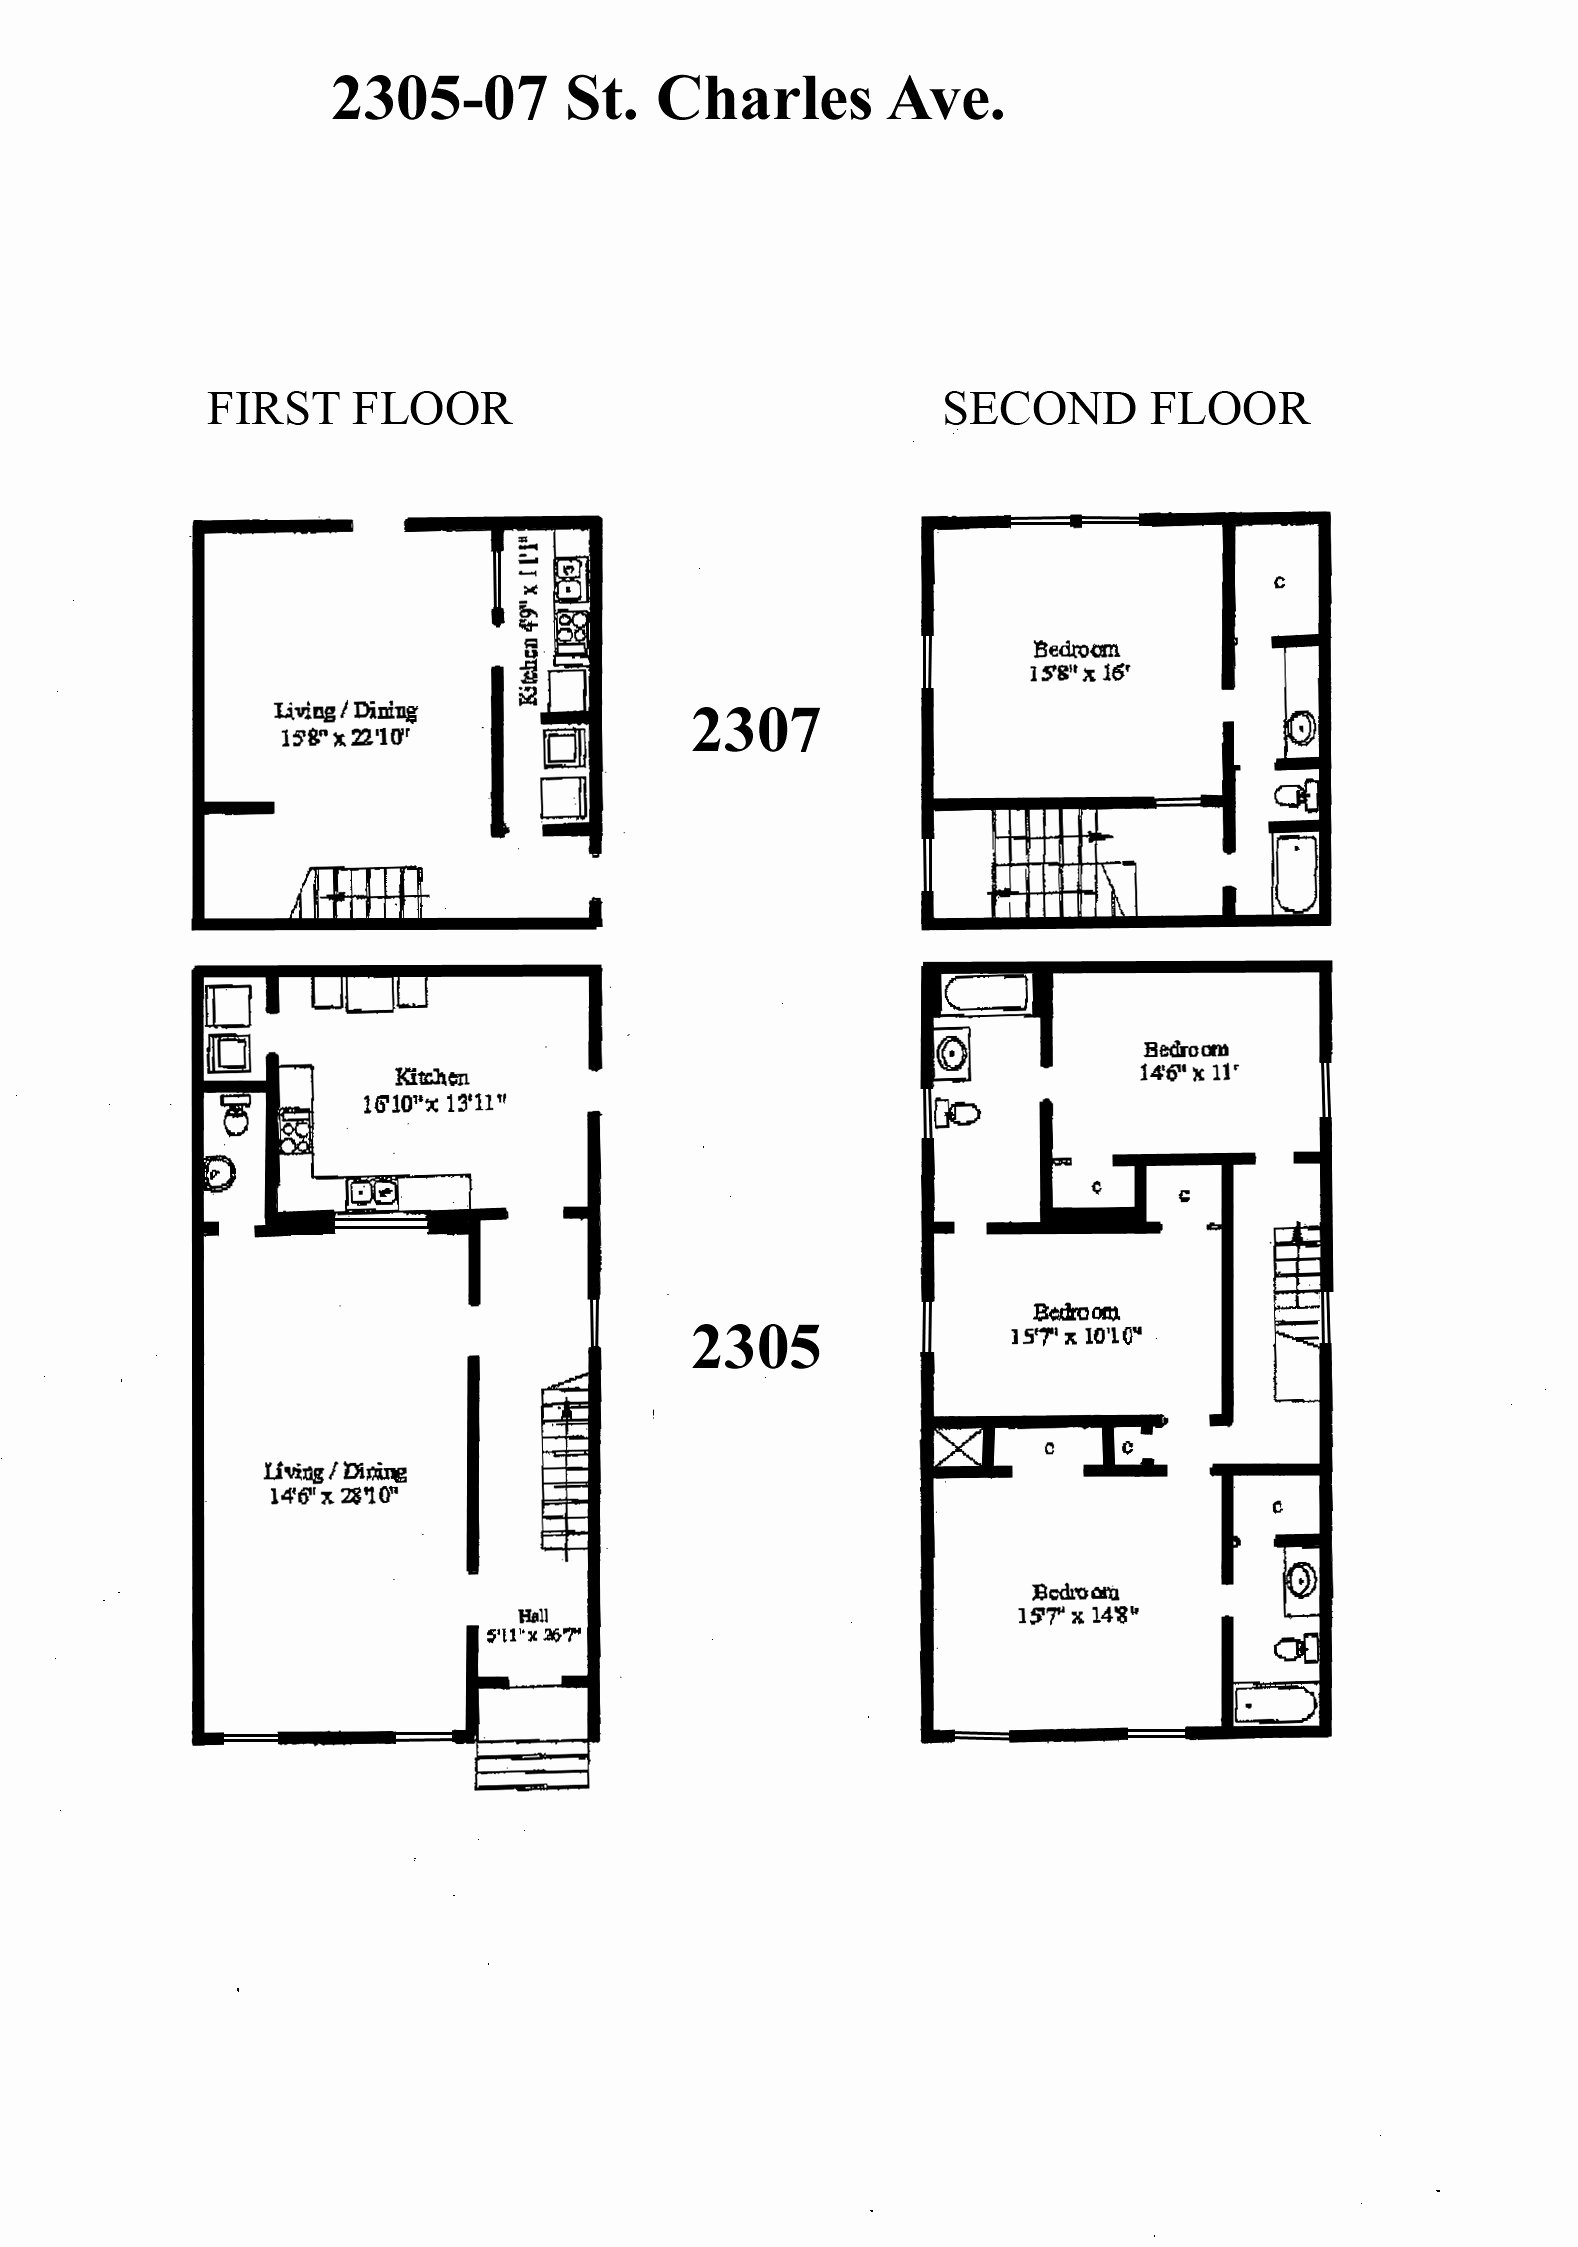 Excel Floor Plan Template Awesome Excel Floor Plan Template New Free Excel Wedding Planner